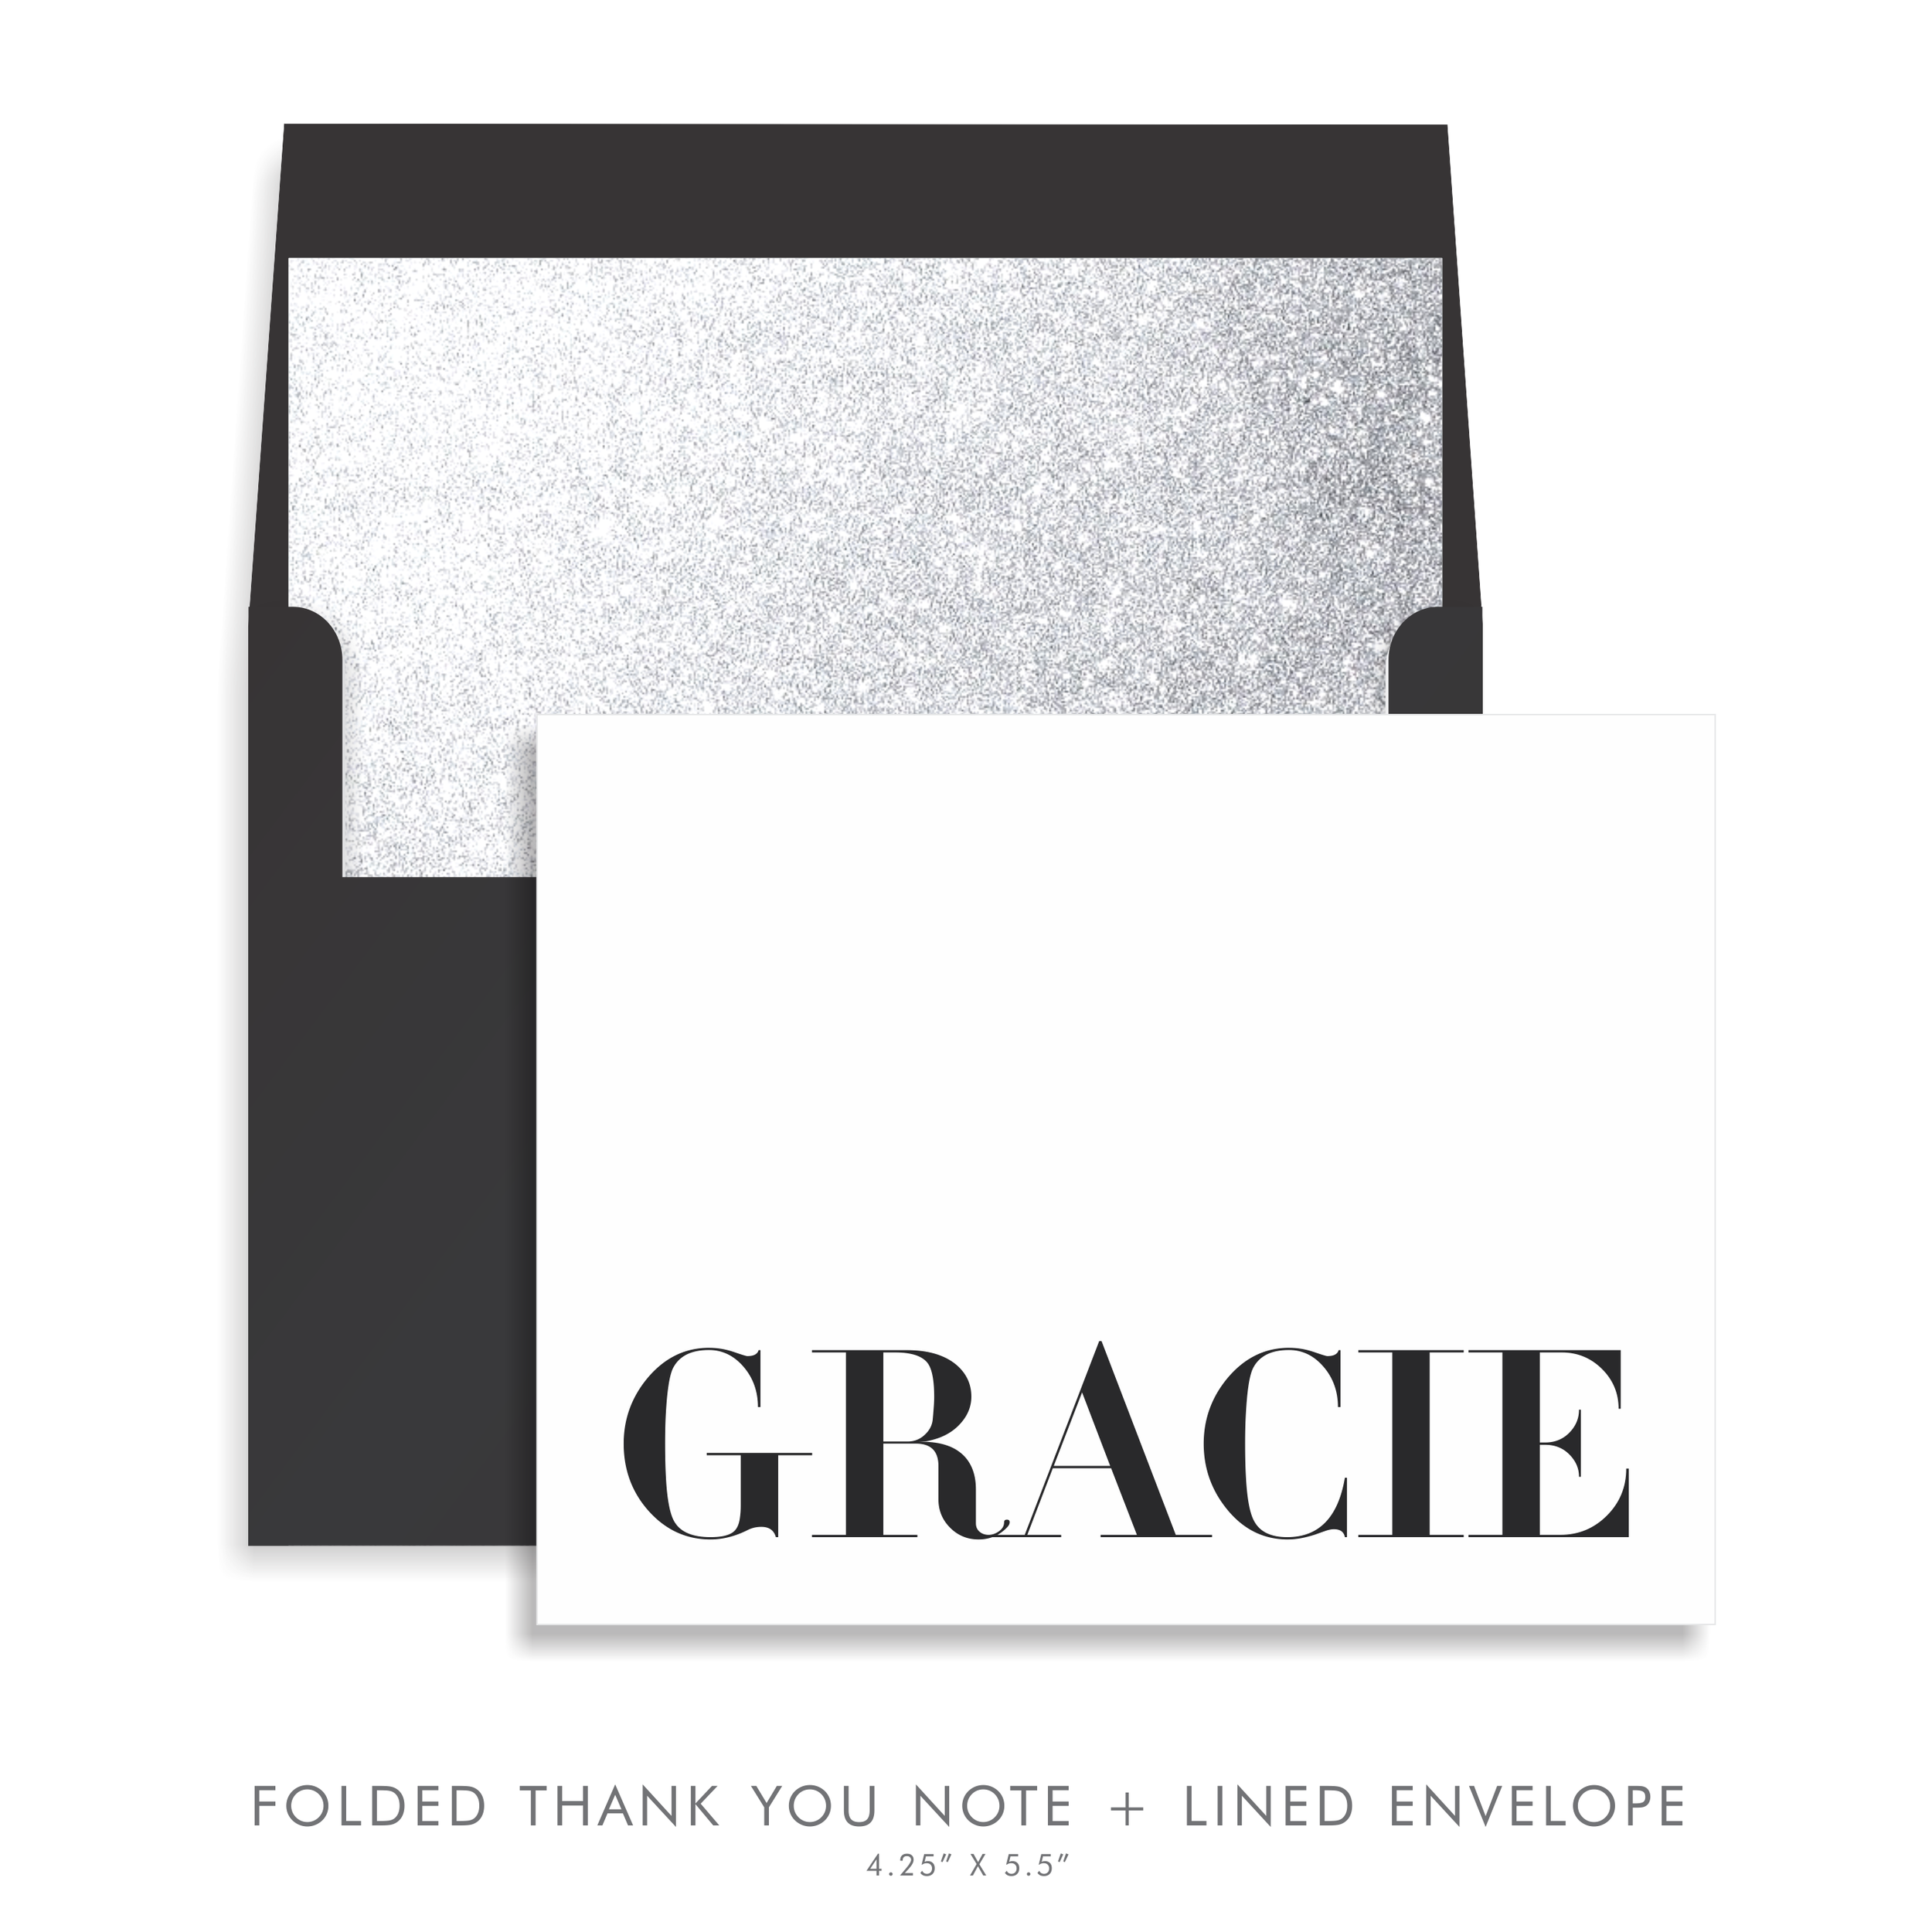 05 BAT MITZVAH INVITATION 5338 FOLDED THANK YOU NOTE s.png